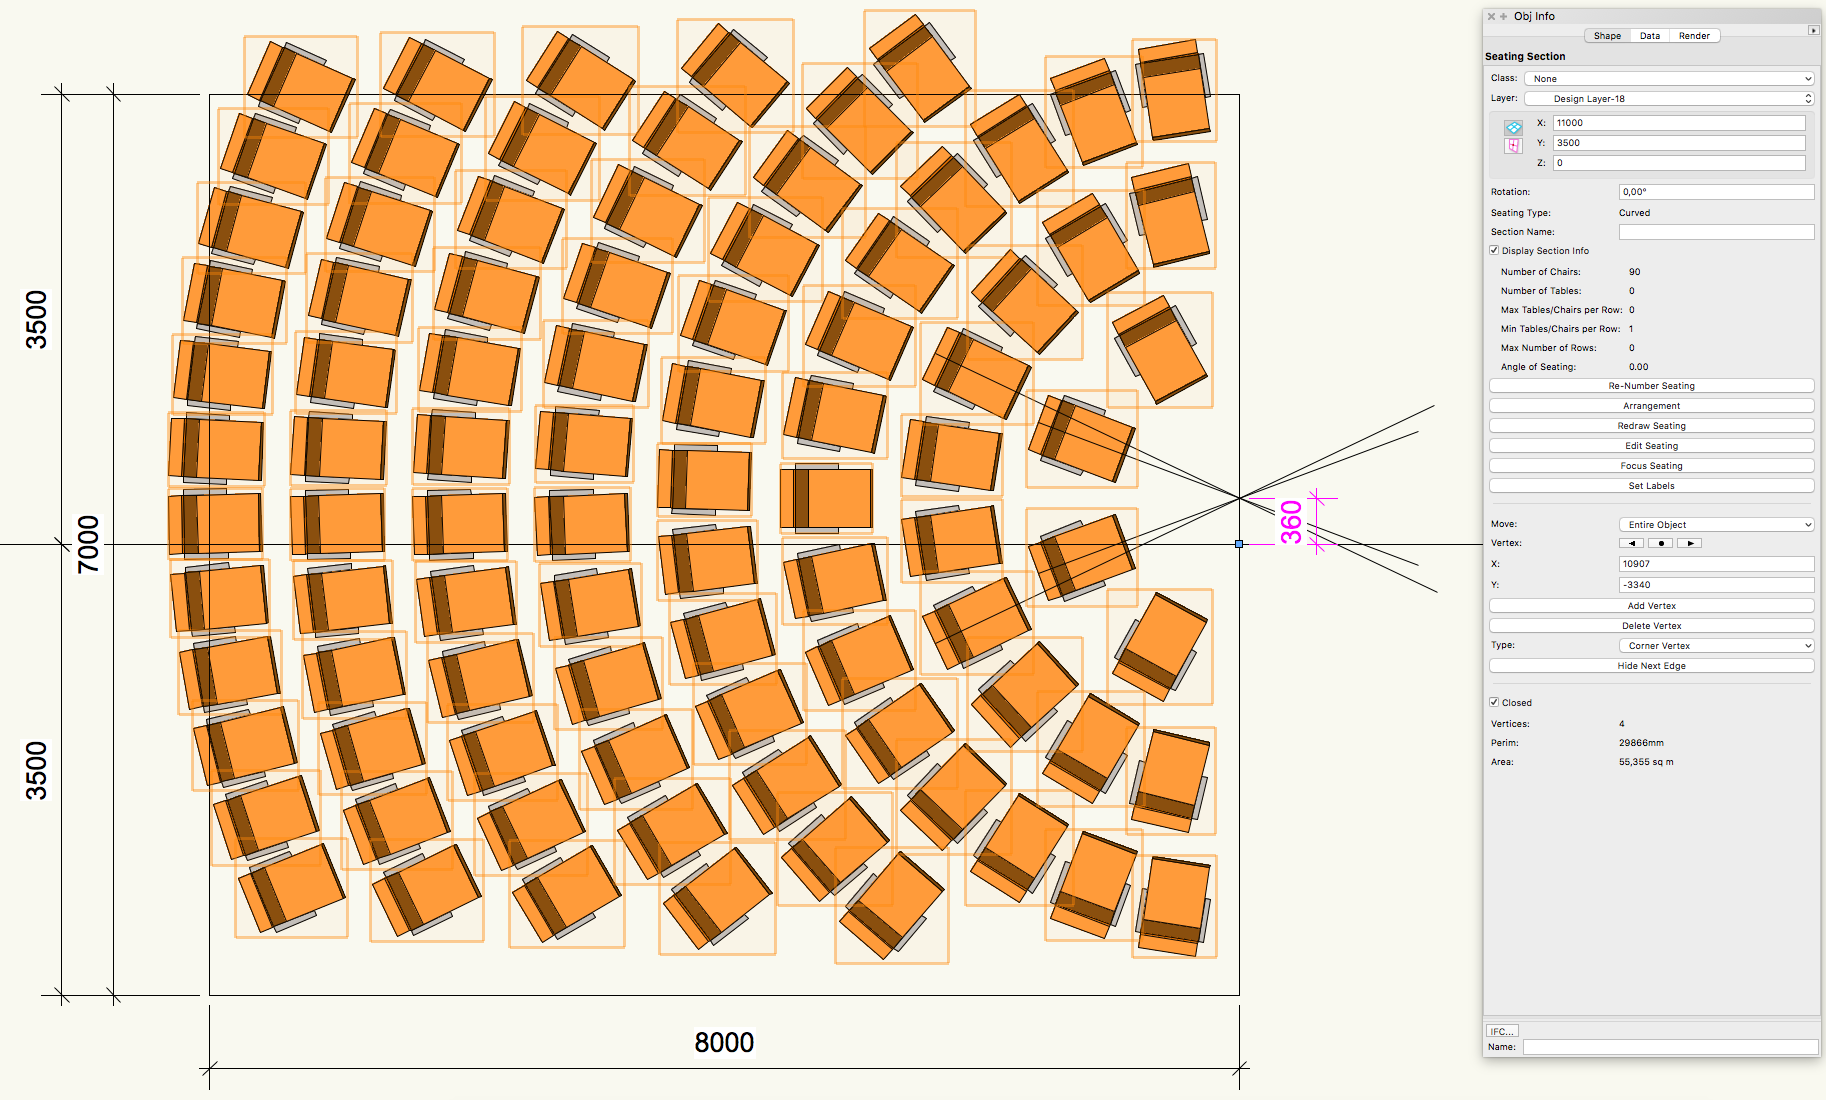 VW2017 seating section curved 20161129 1st step offset.png